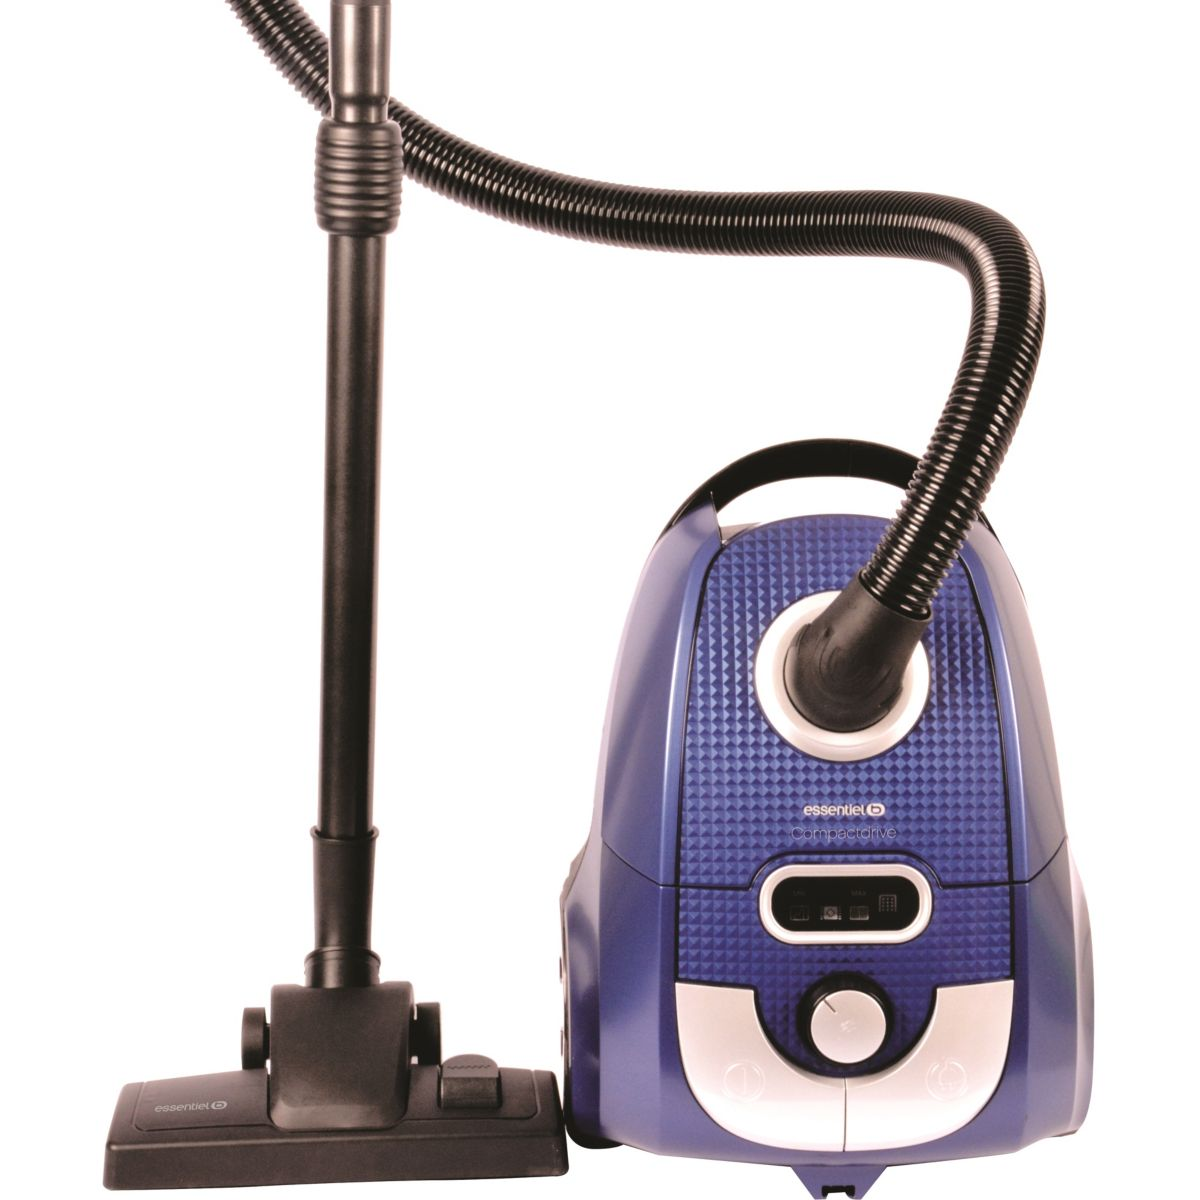 Aspirateur avec sac ESSENTIELB EAT 681CD COMPACTDRIVE (photo)